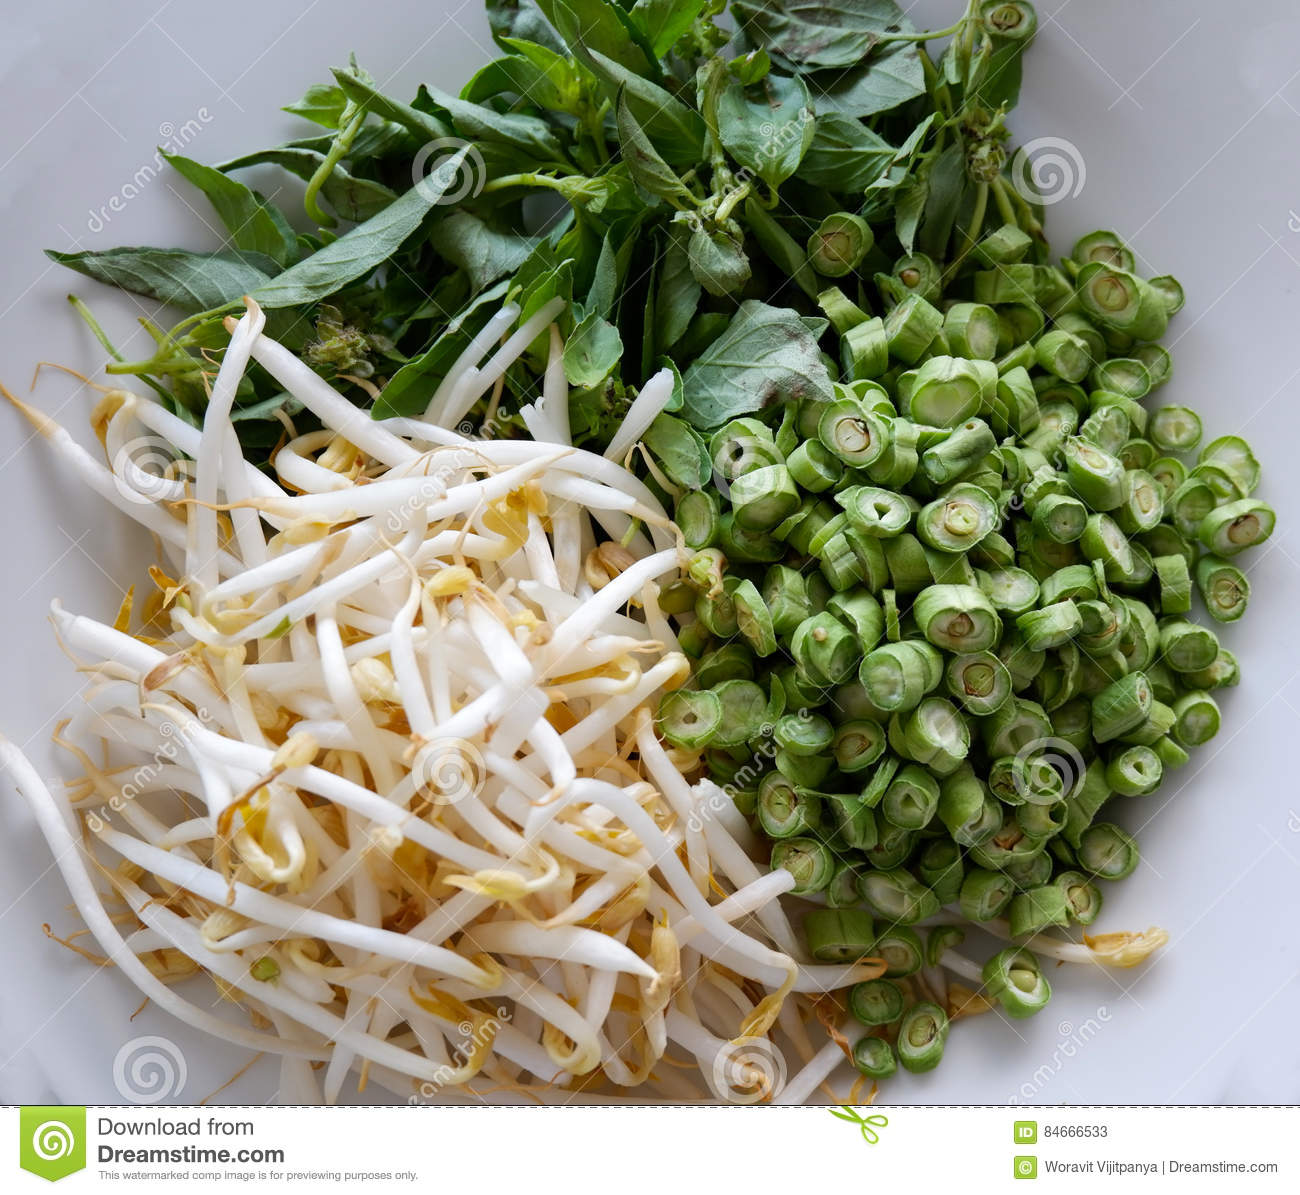 Long beans chopped bean sprouts